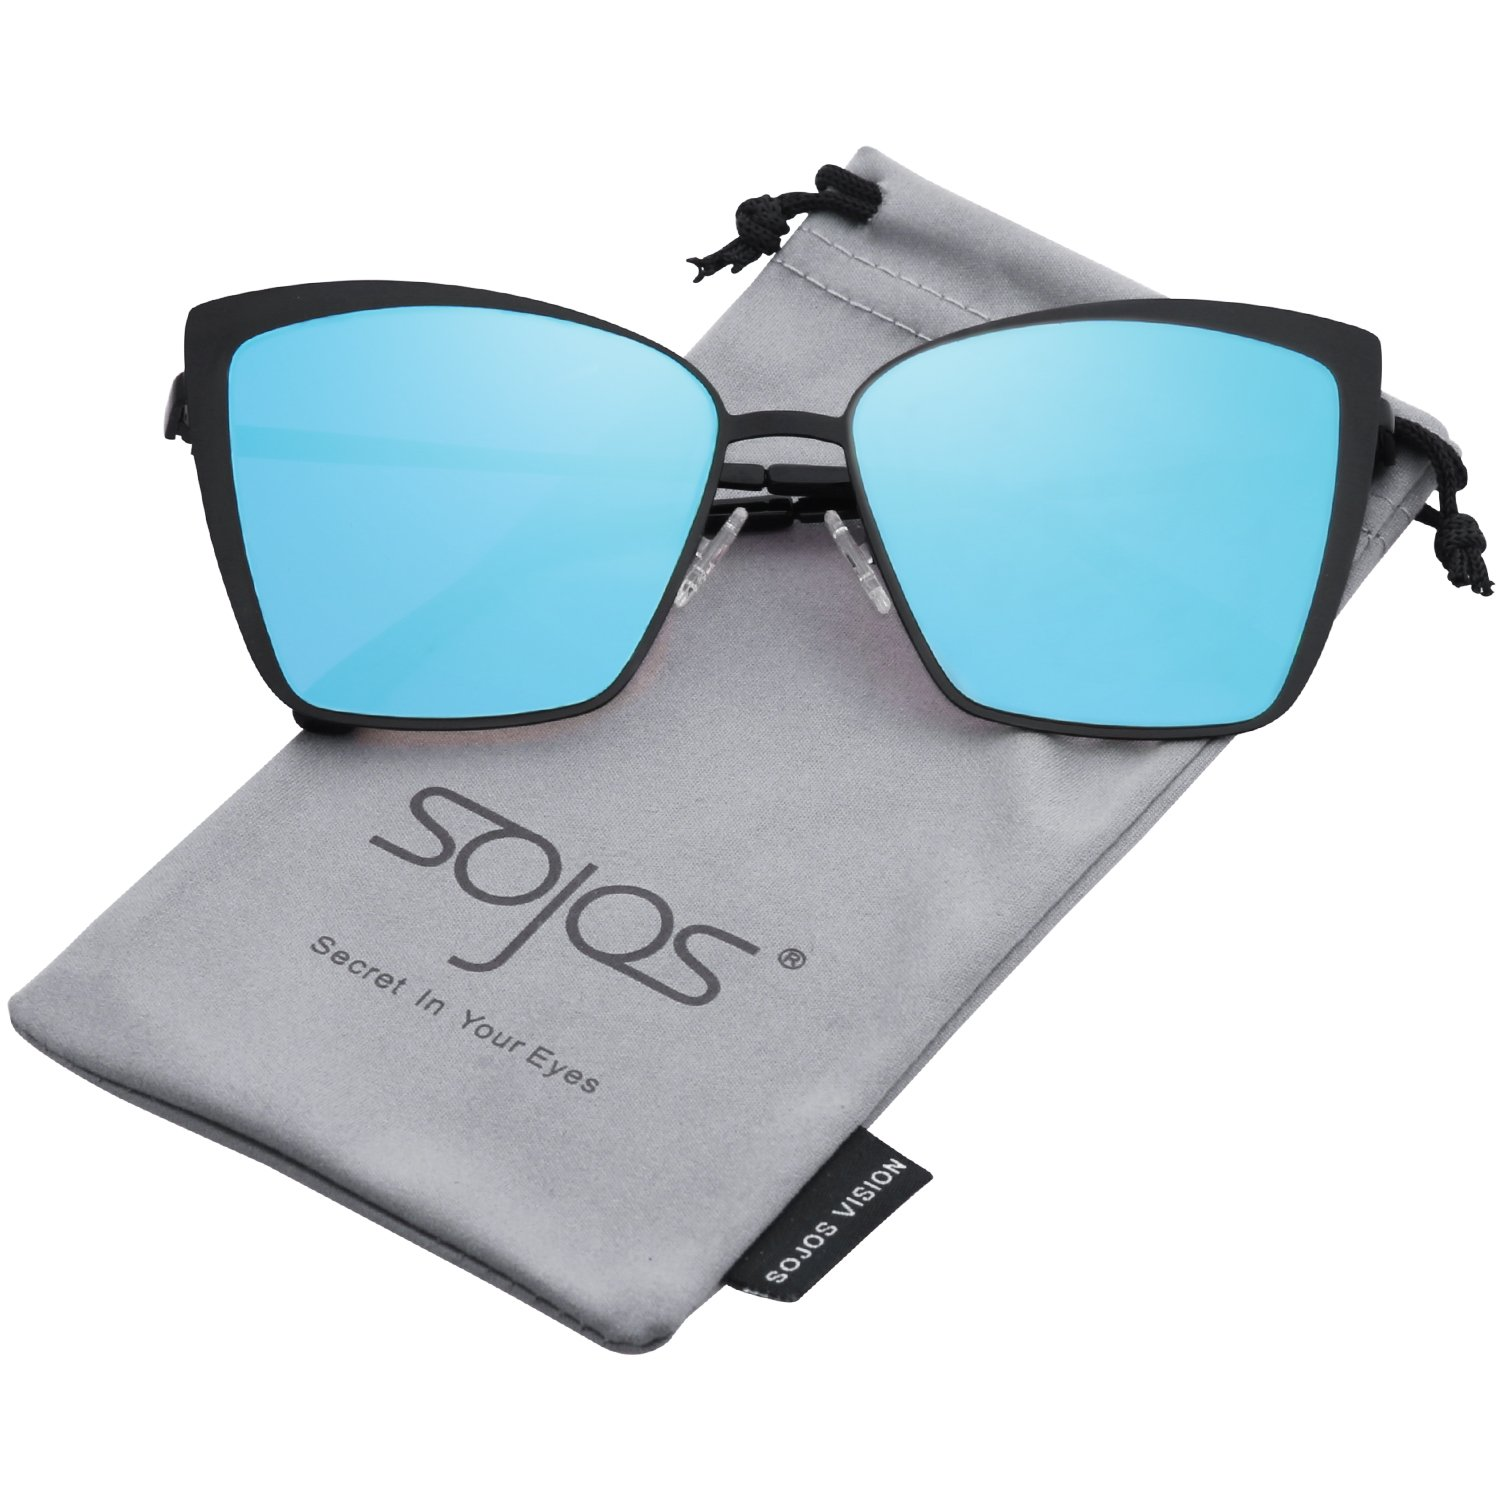 SOJOS Cateye Sunglasses for Women Fashion Mirrored Lens Metal Frame SJ1086 with Matte Black Frame/Blue Mirrored Lens